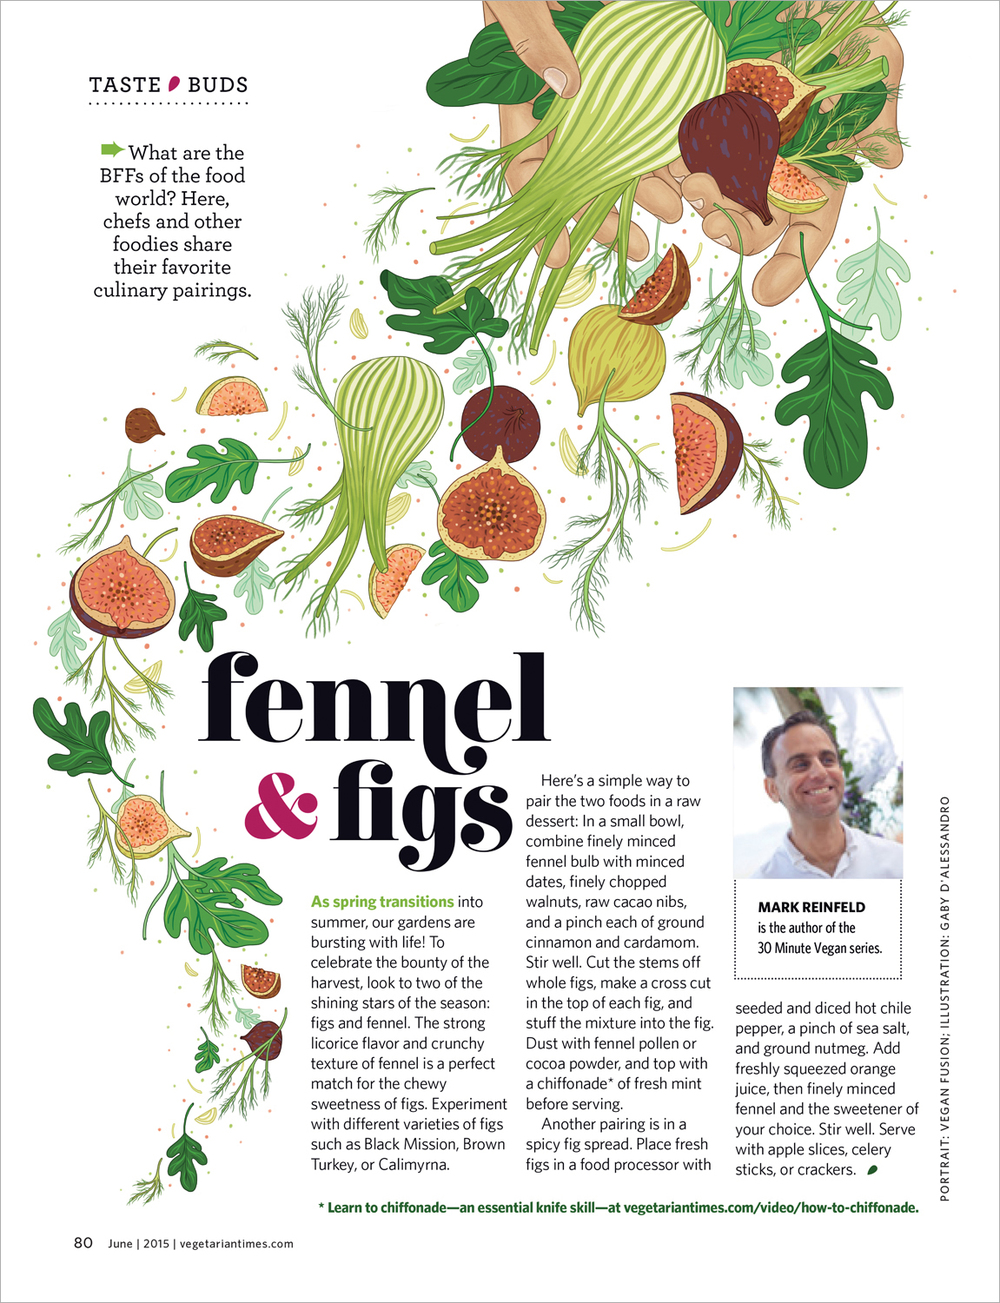 Fennel-and-Figs-layoutjpg.jpg